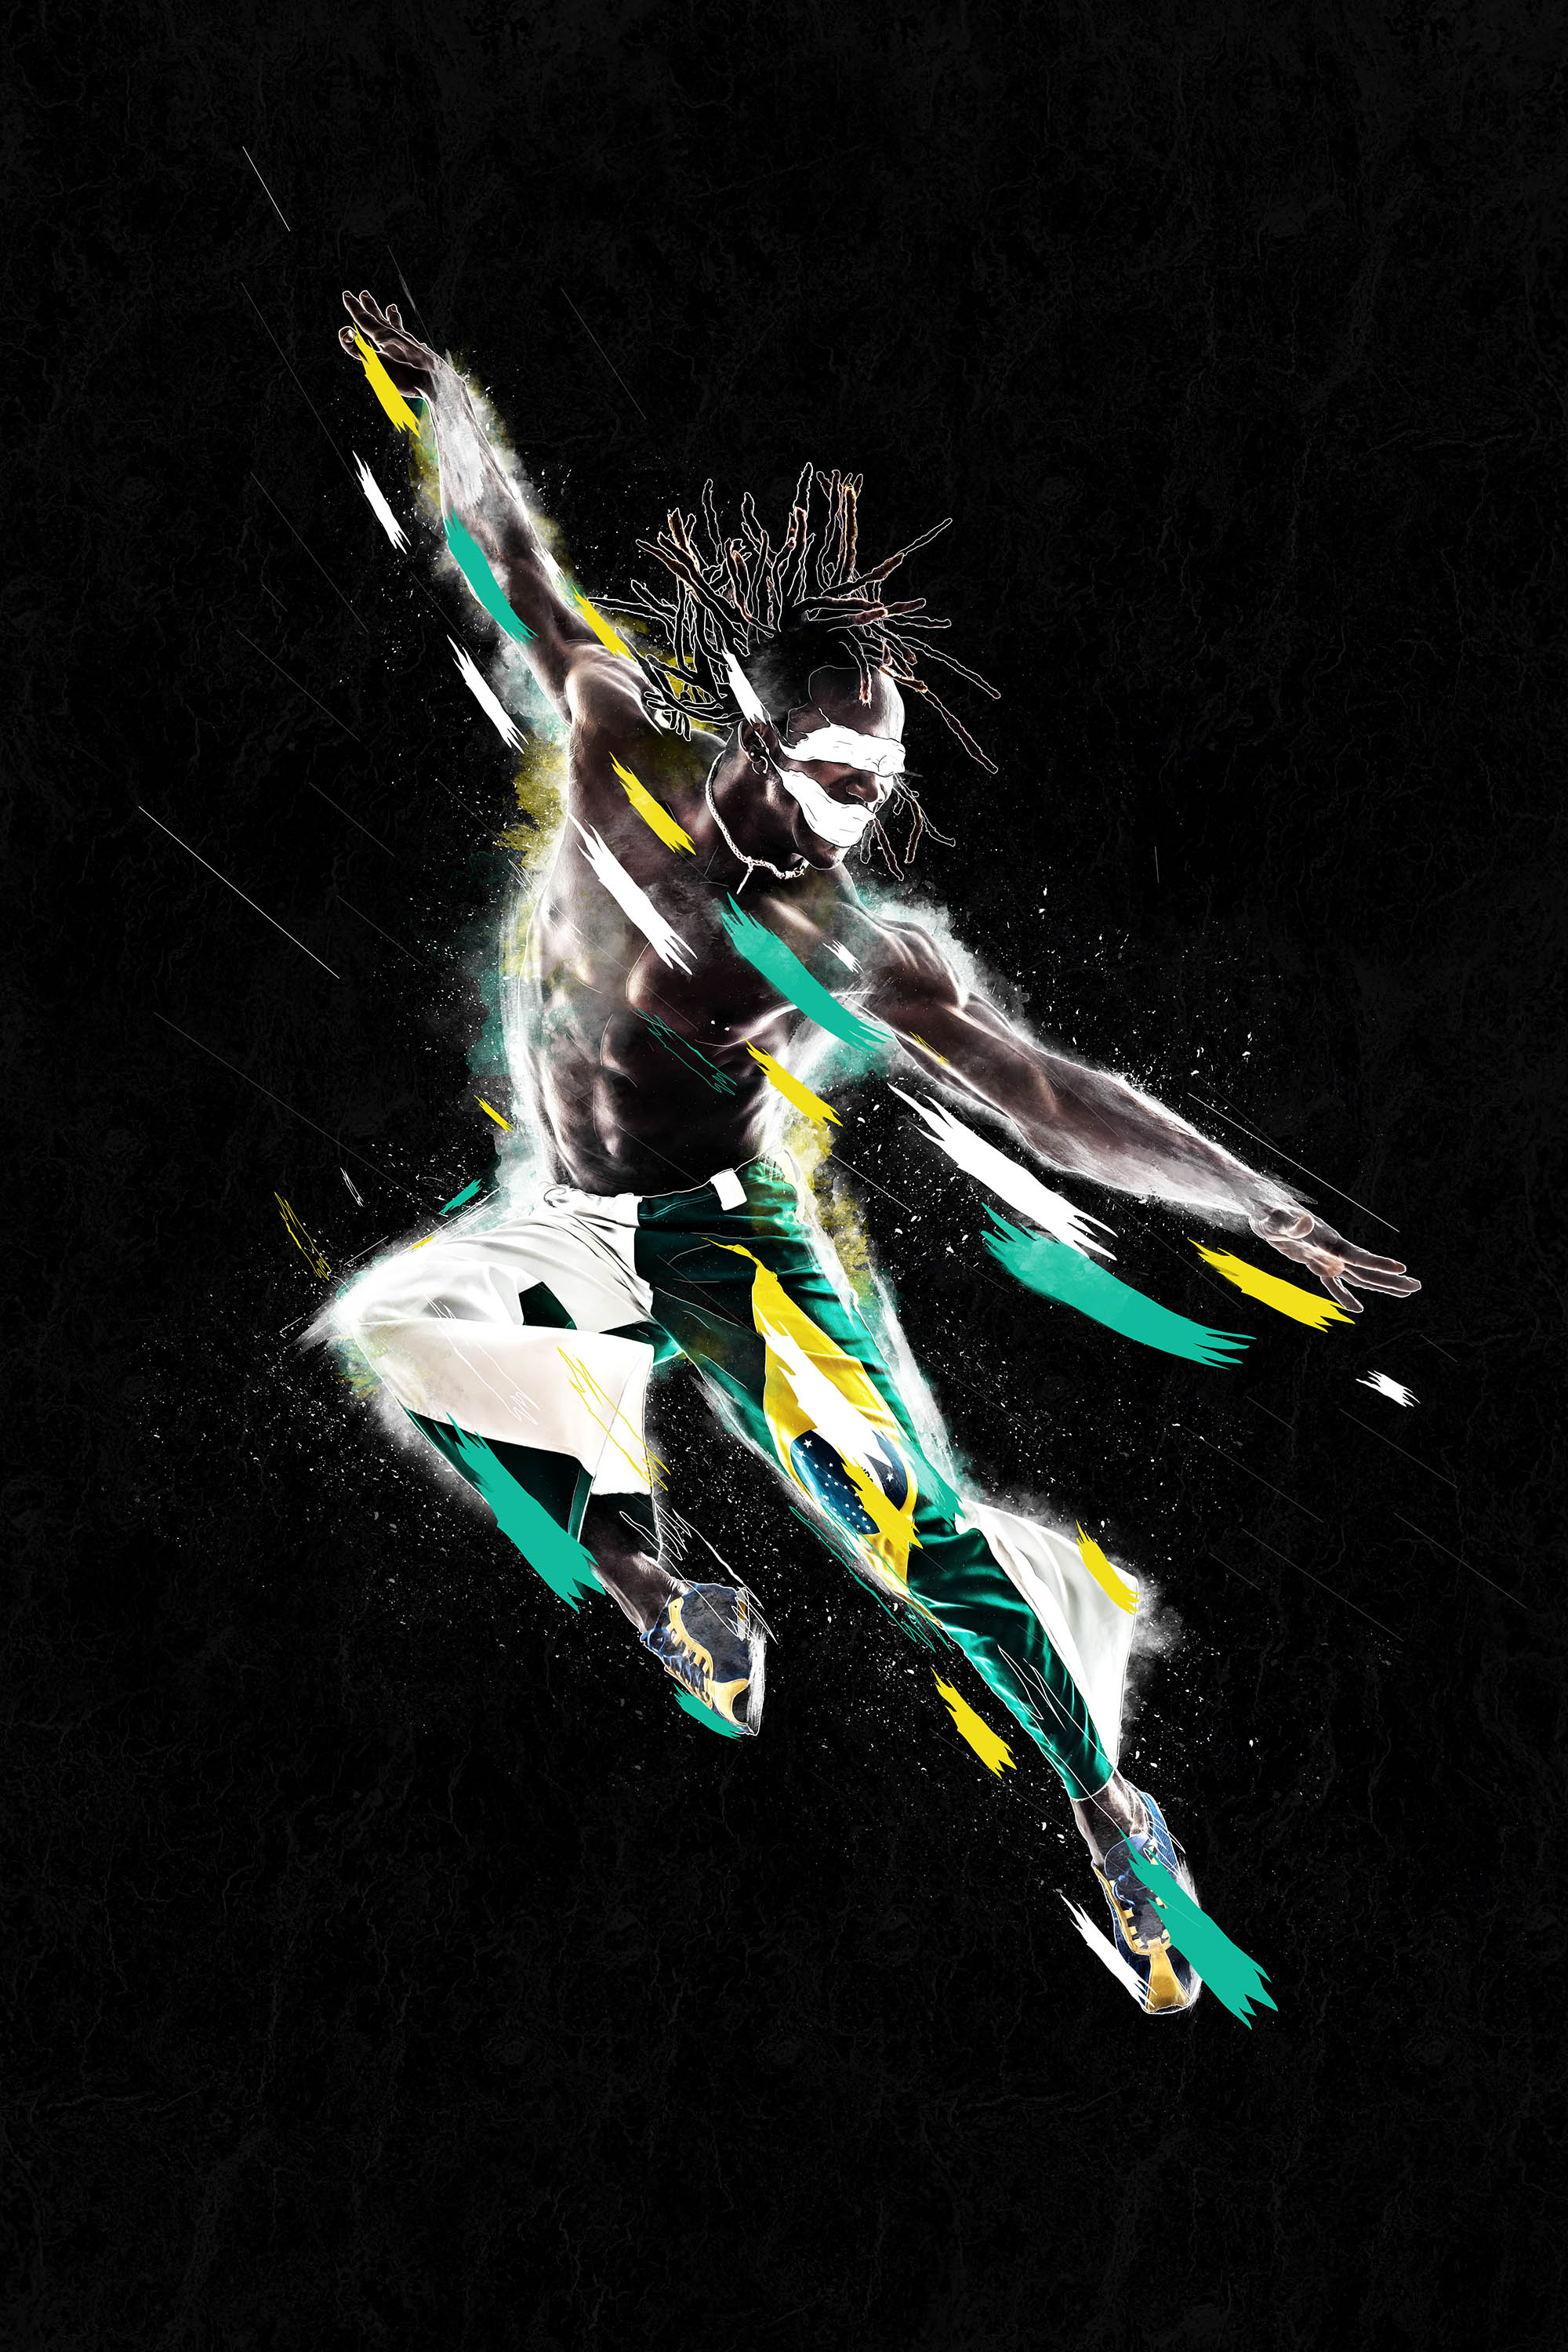 """Envy"" Digital image of a Man jumping in the air"